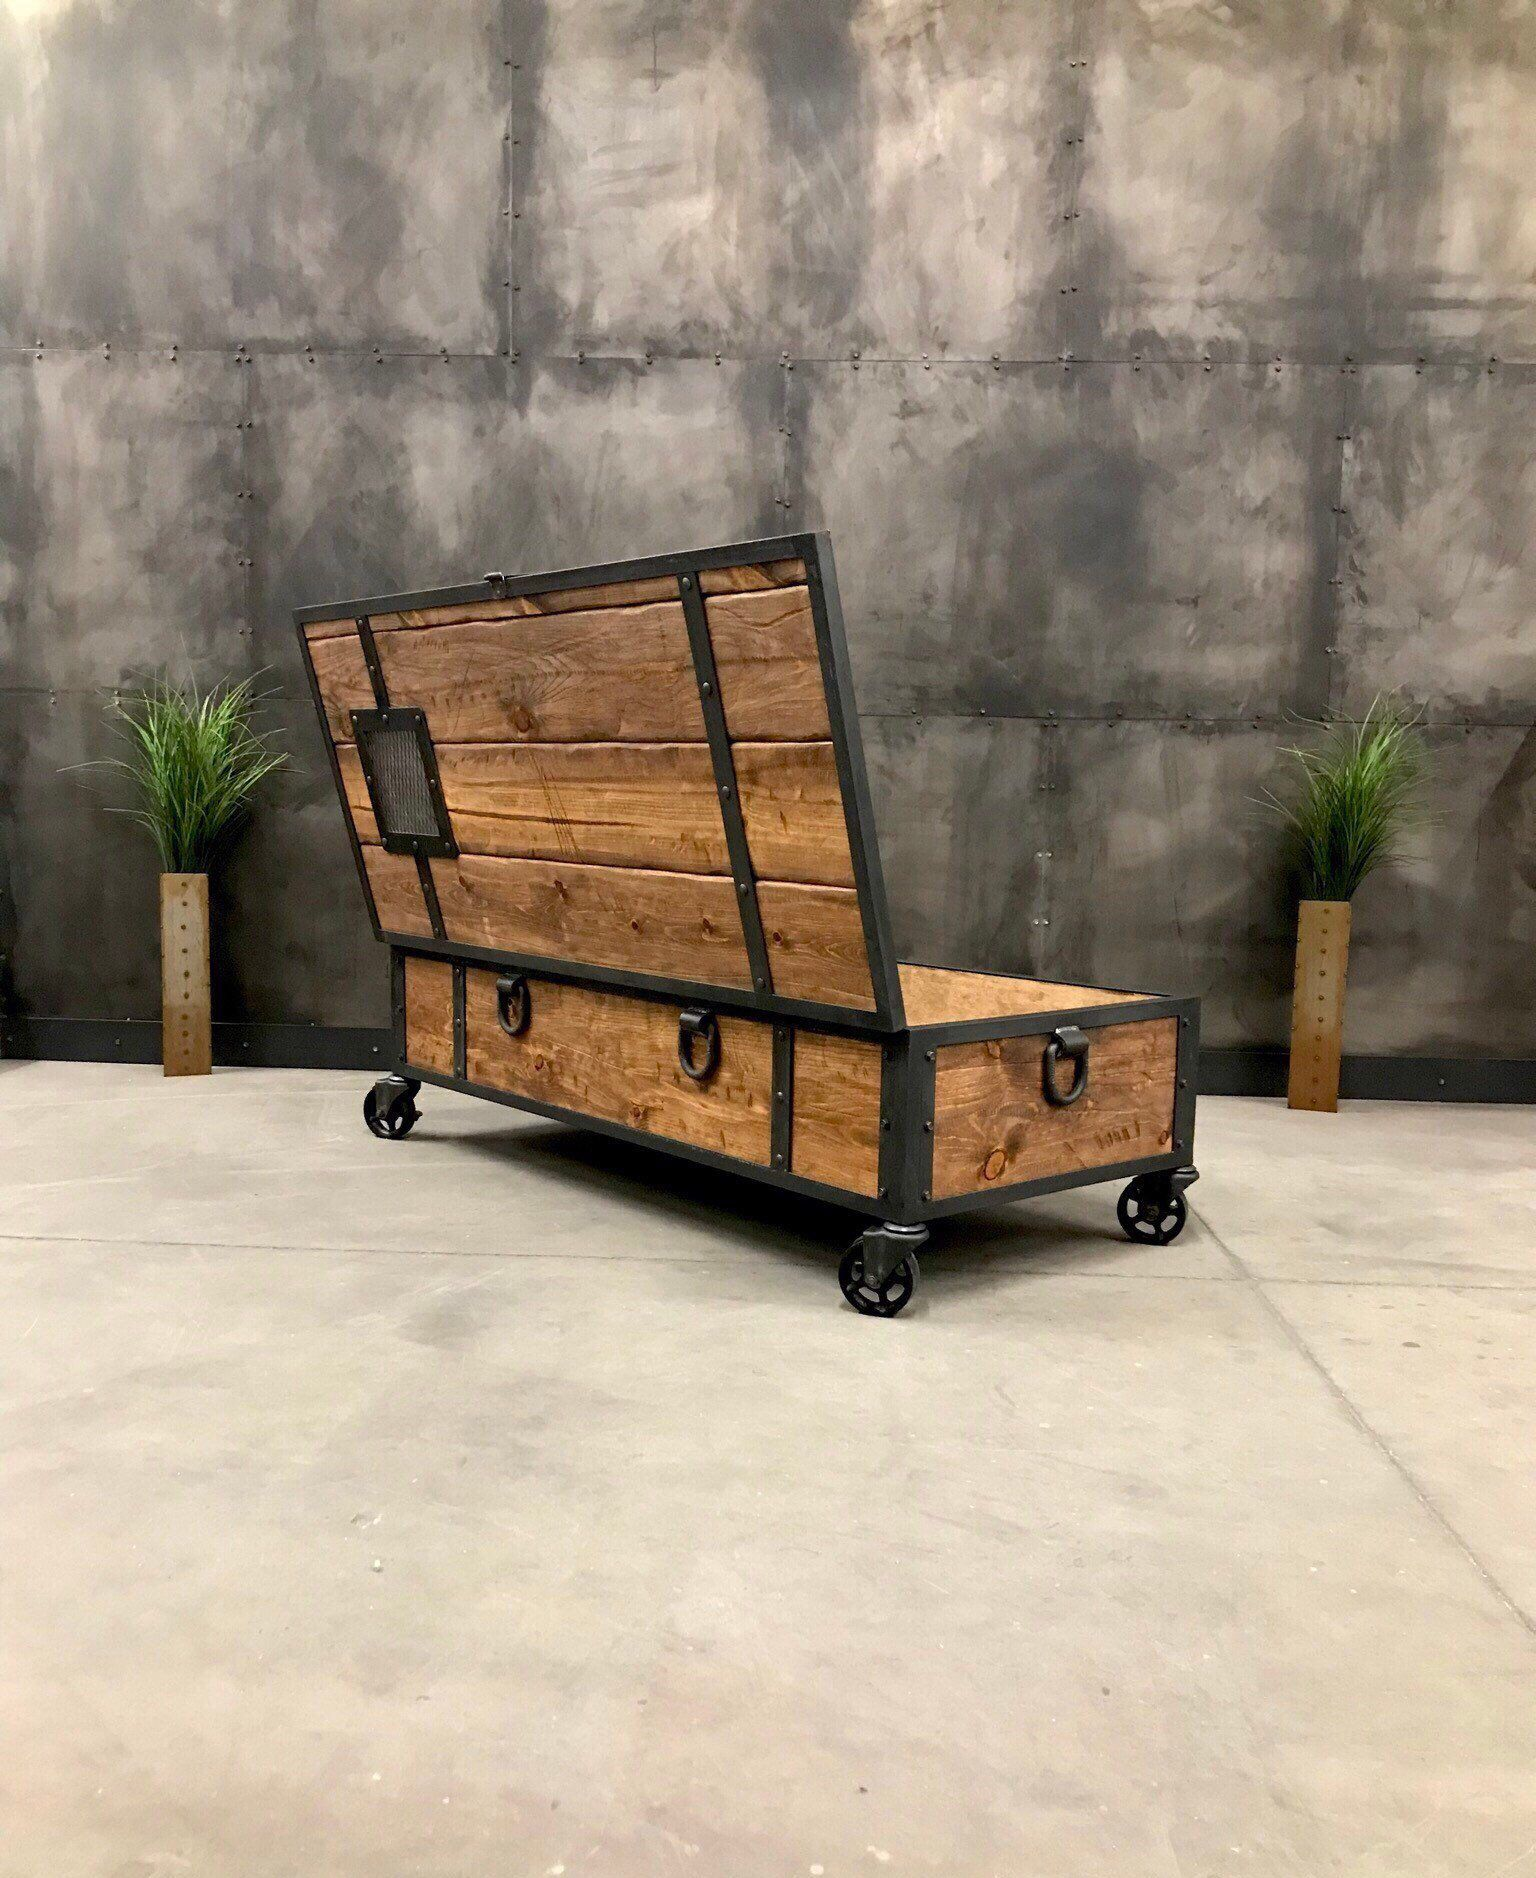 Fabricated Steel Coffee Table: Industrial Locking Chest/ Rustic Coffee Table/ Storage